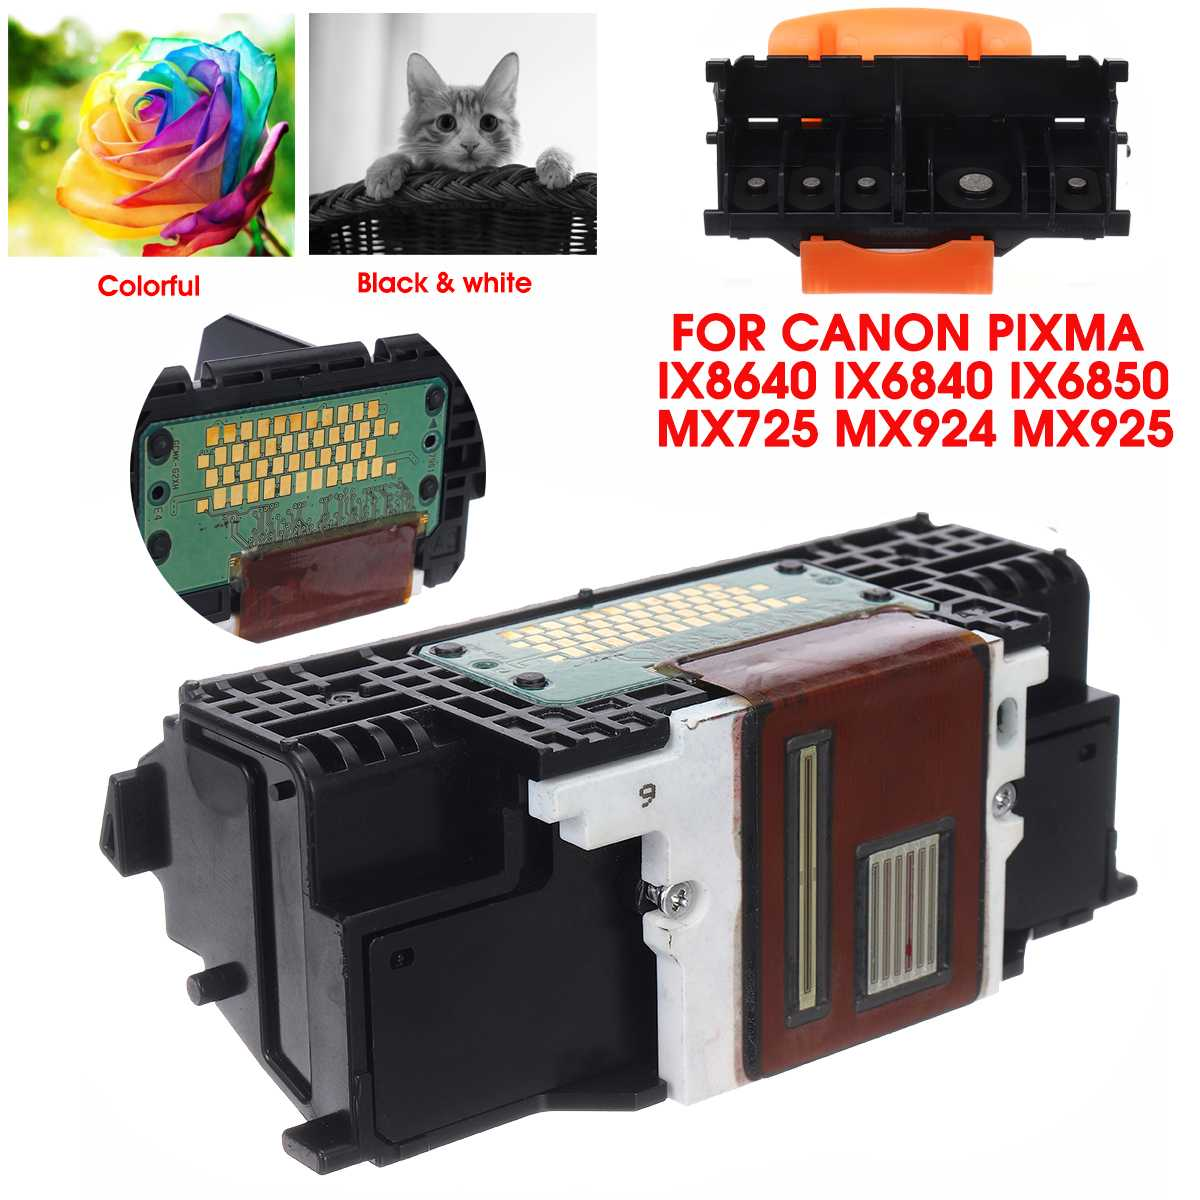 LEORY QY6-0086-000 Printer Print Head Printhead Printer Parts Accessories For Canon Pixma iX8640 iX6840 iX6850 MX725 MX924 MX925